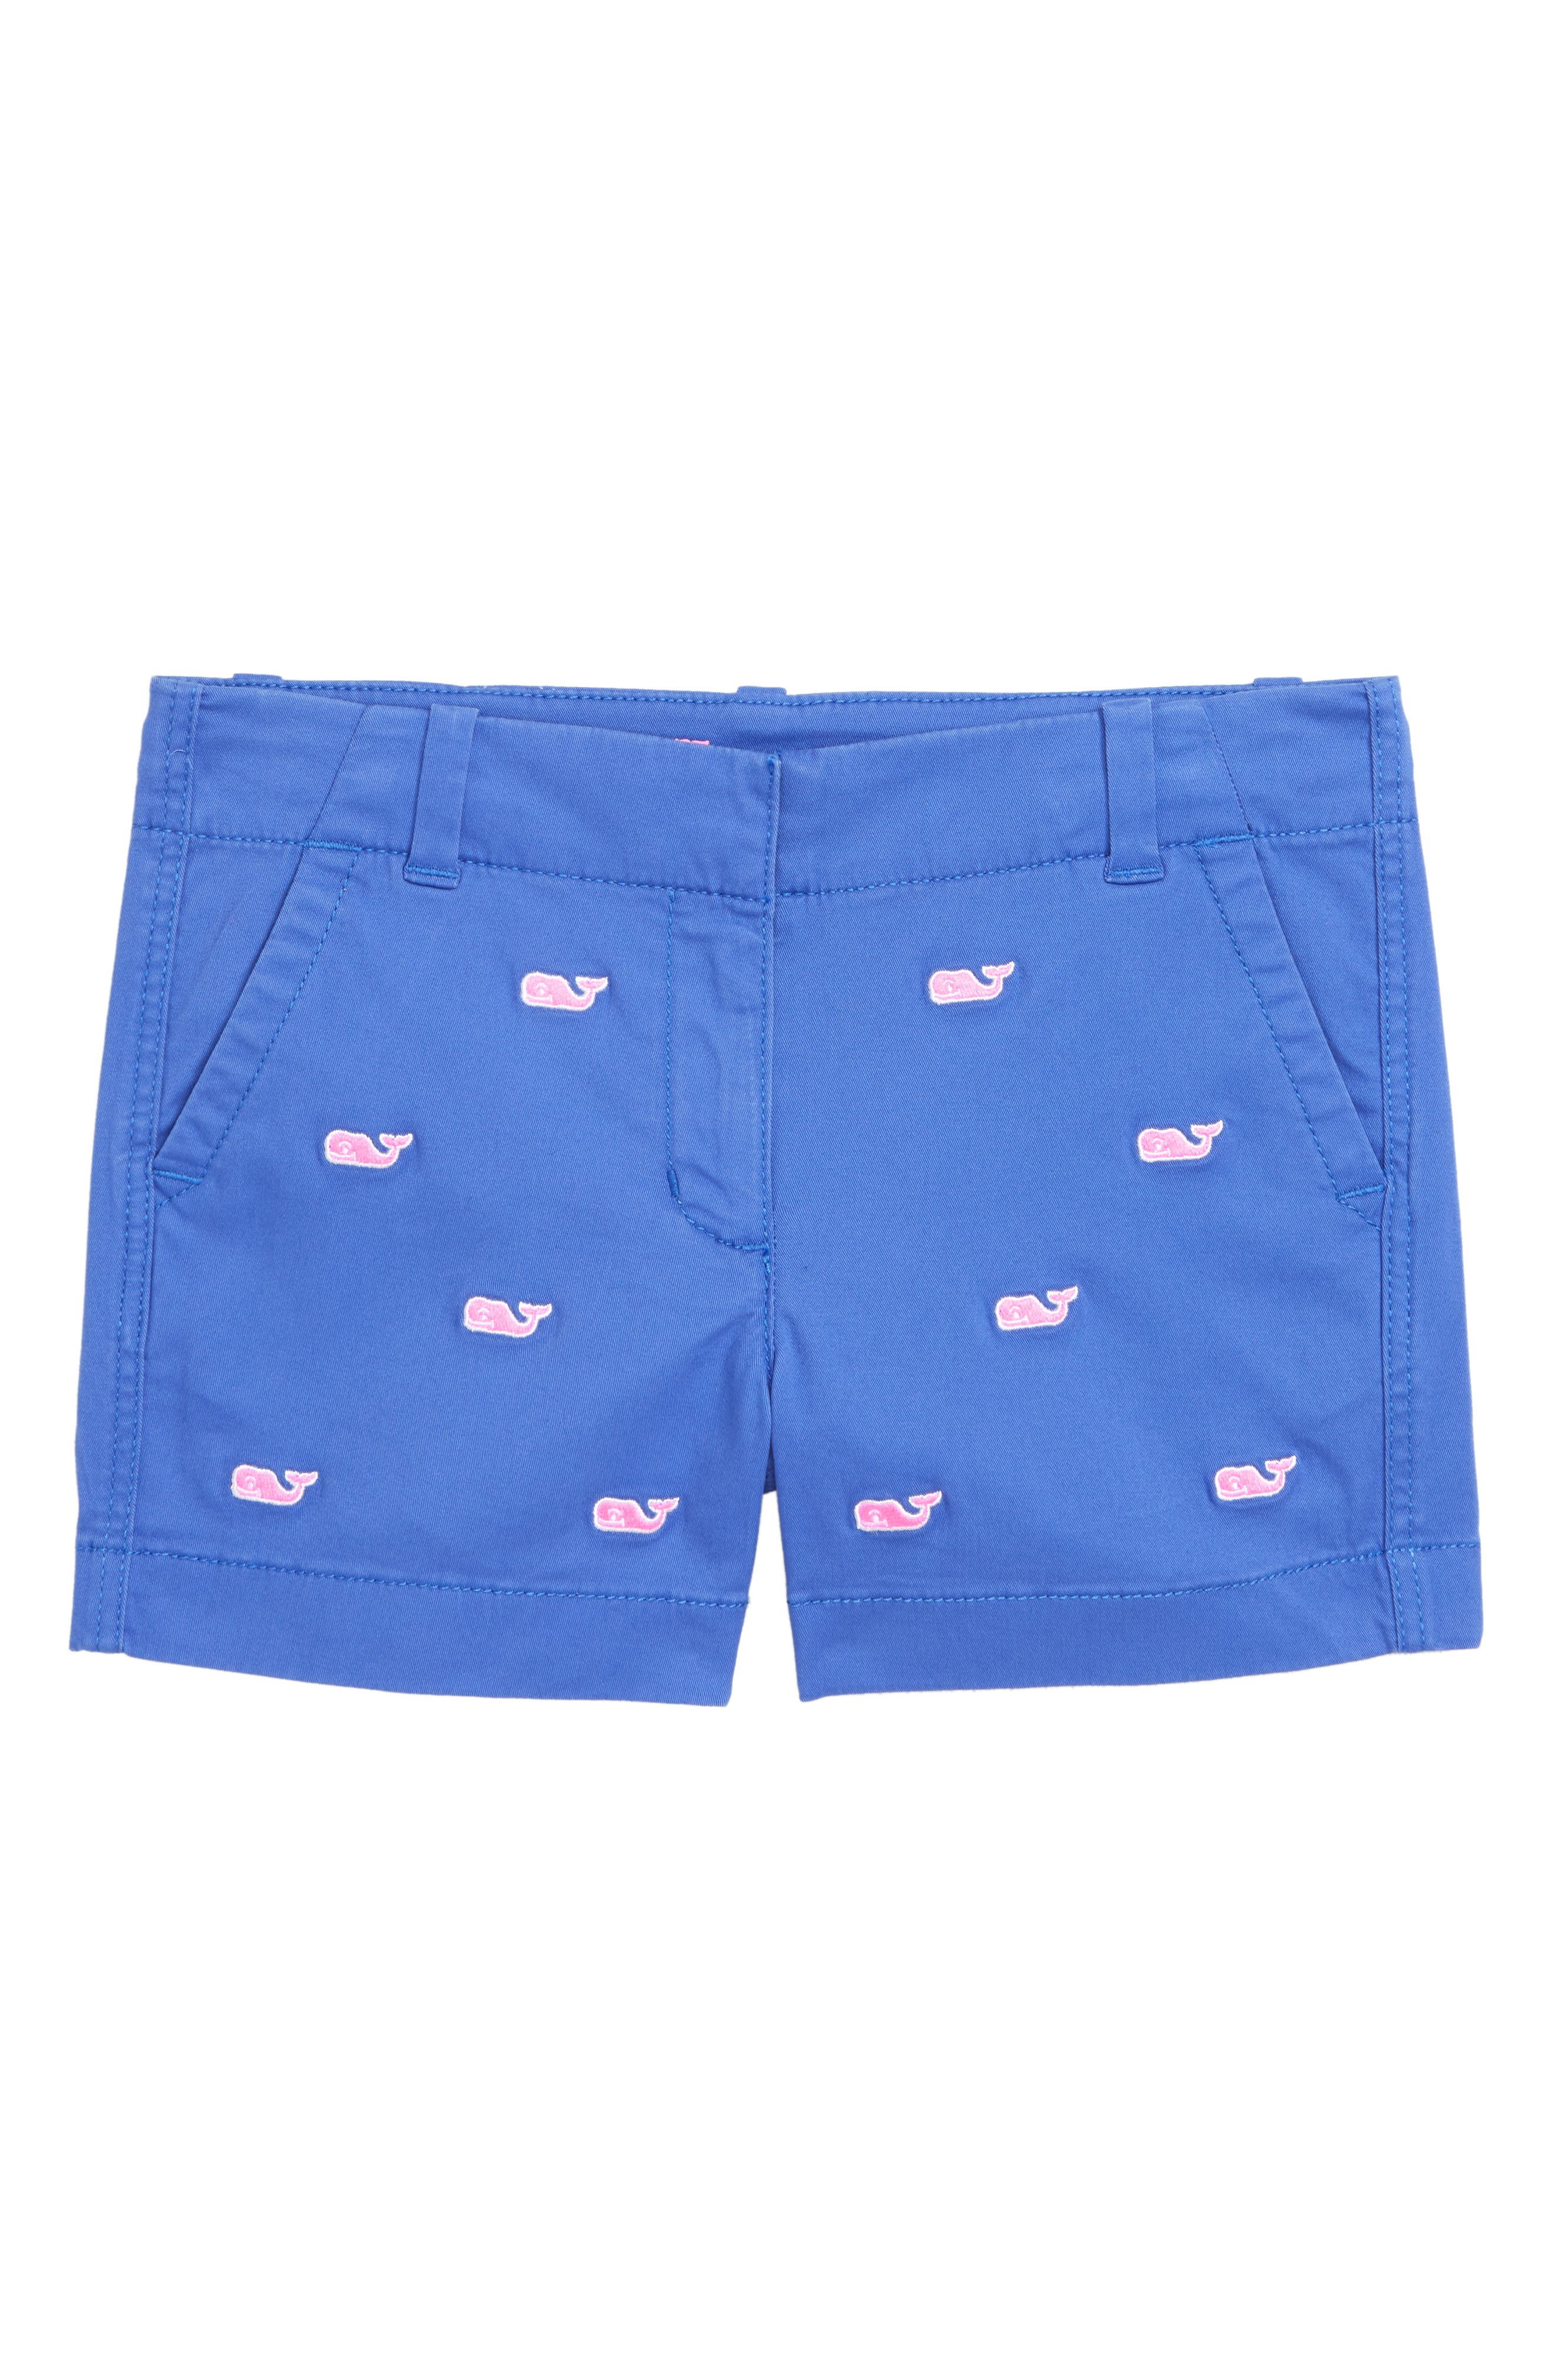 VINEYARD VINES Whale Embroidered Chino Shorts, Main, color, 400